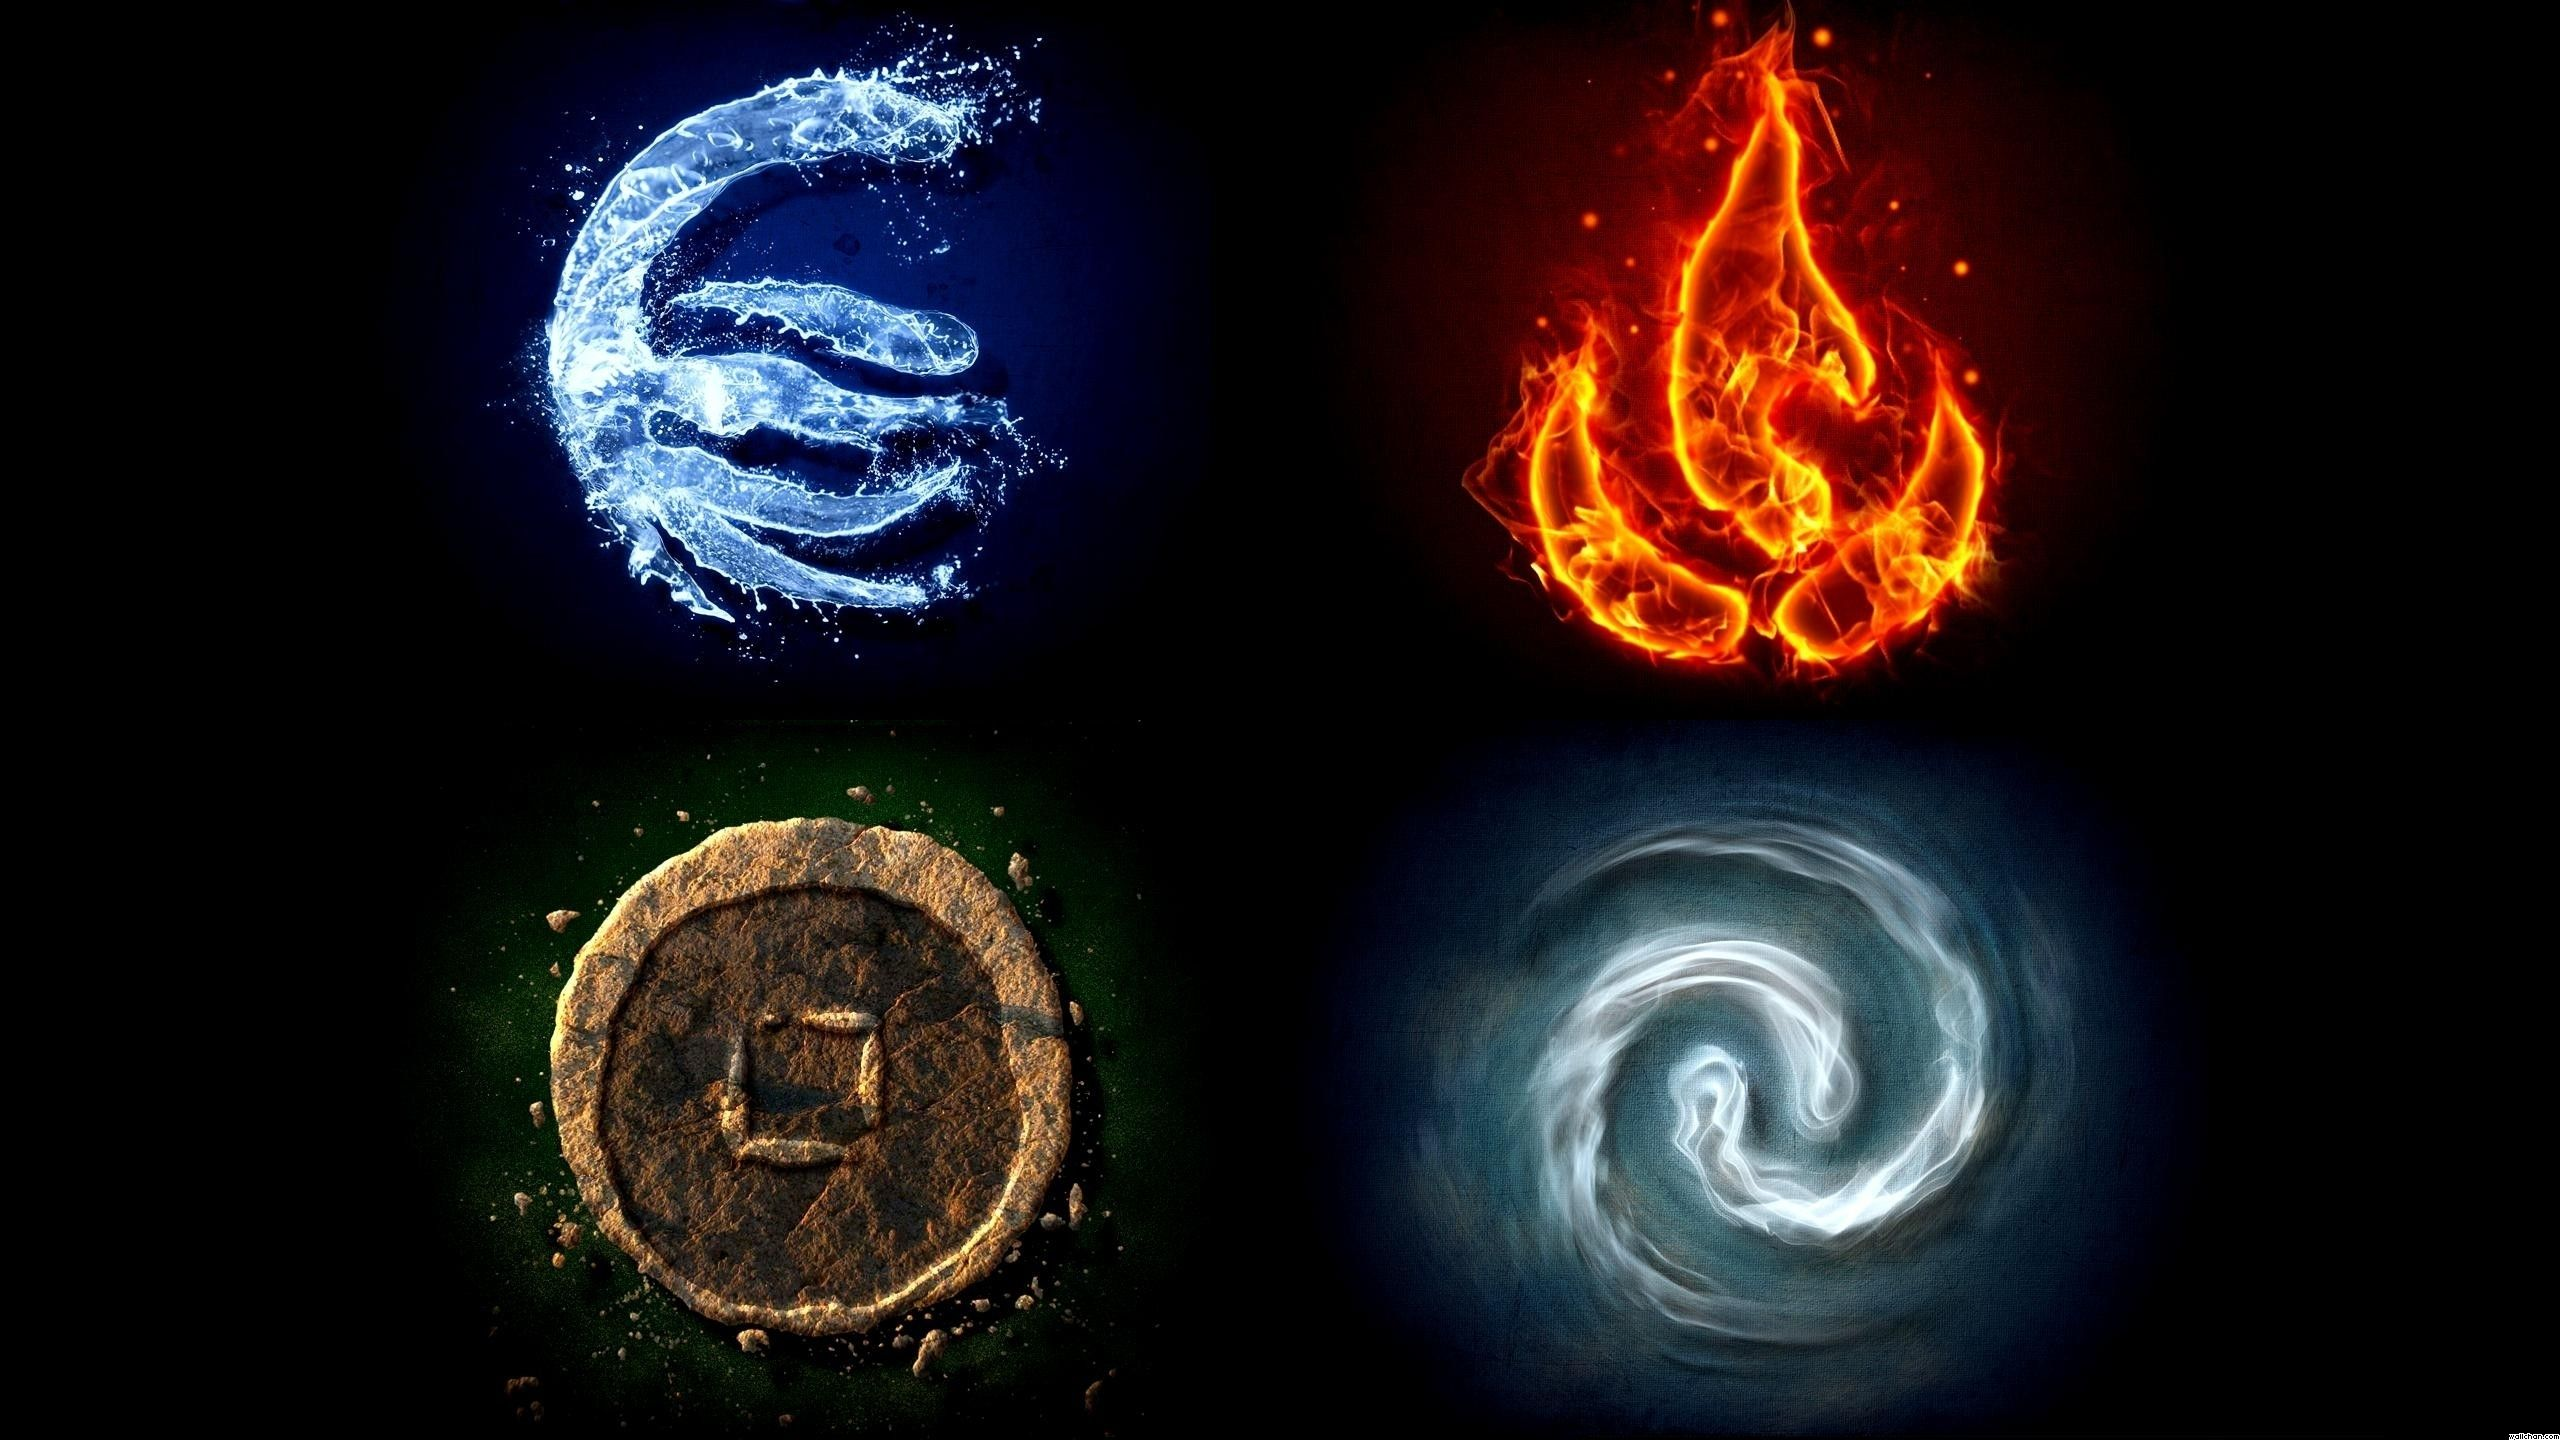 Earth Water Fire Air Avatar The Last Airbender Wallpaper Earth Water Fire Air Avatar The Last Airben Types Of Dragons Earth Air Fire Water What Element Are You